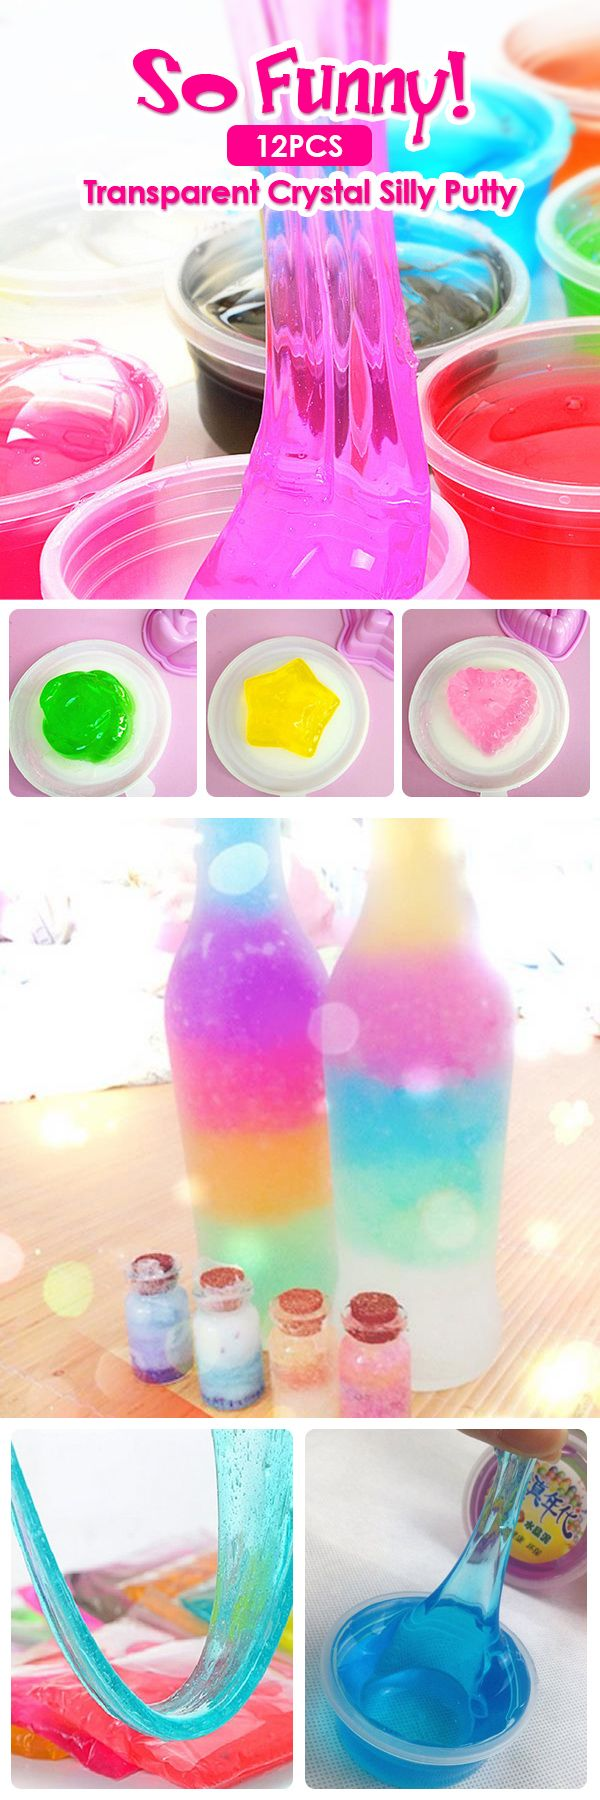 How to get the rainbow slime in 1 minute? $6.99 12Pcs Putty Crystal Slime Jelly Mud Slime Ramen Squishy Pressure Release Toys Children Educational Toys